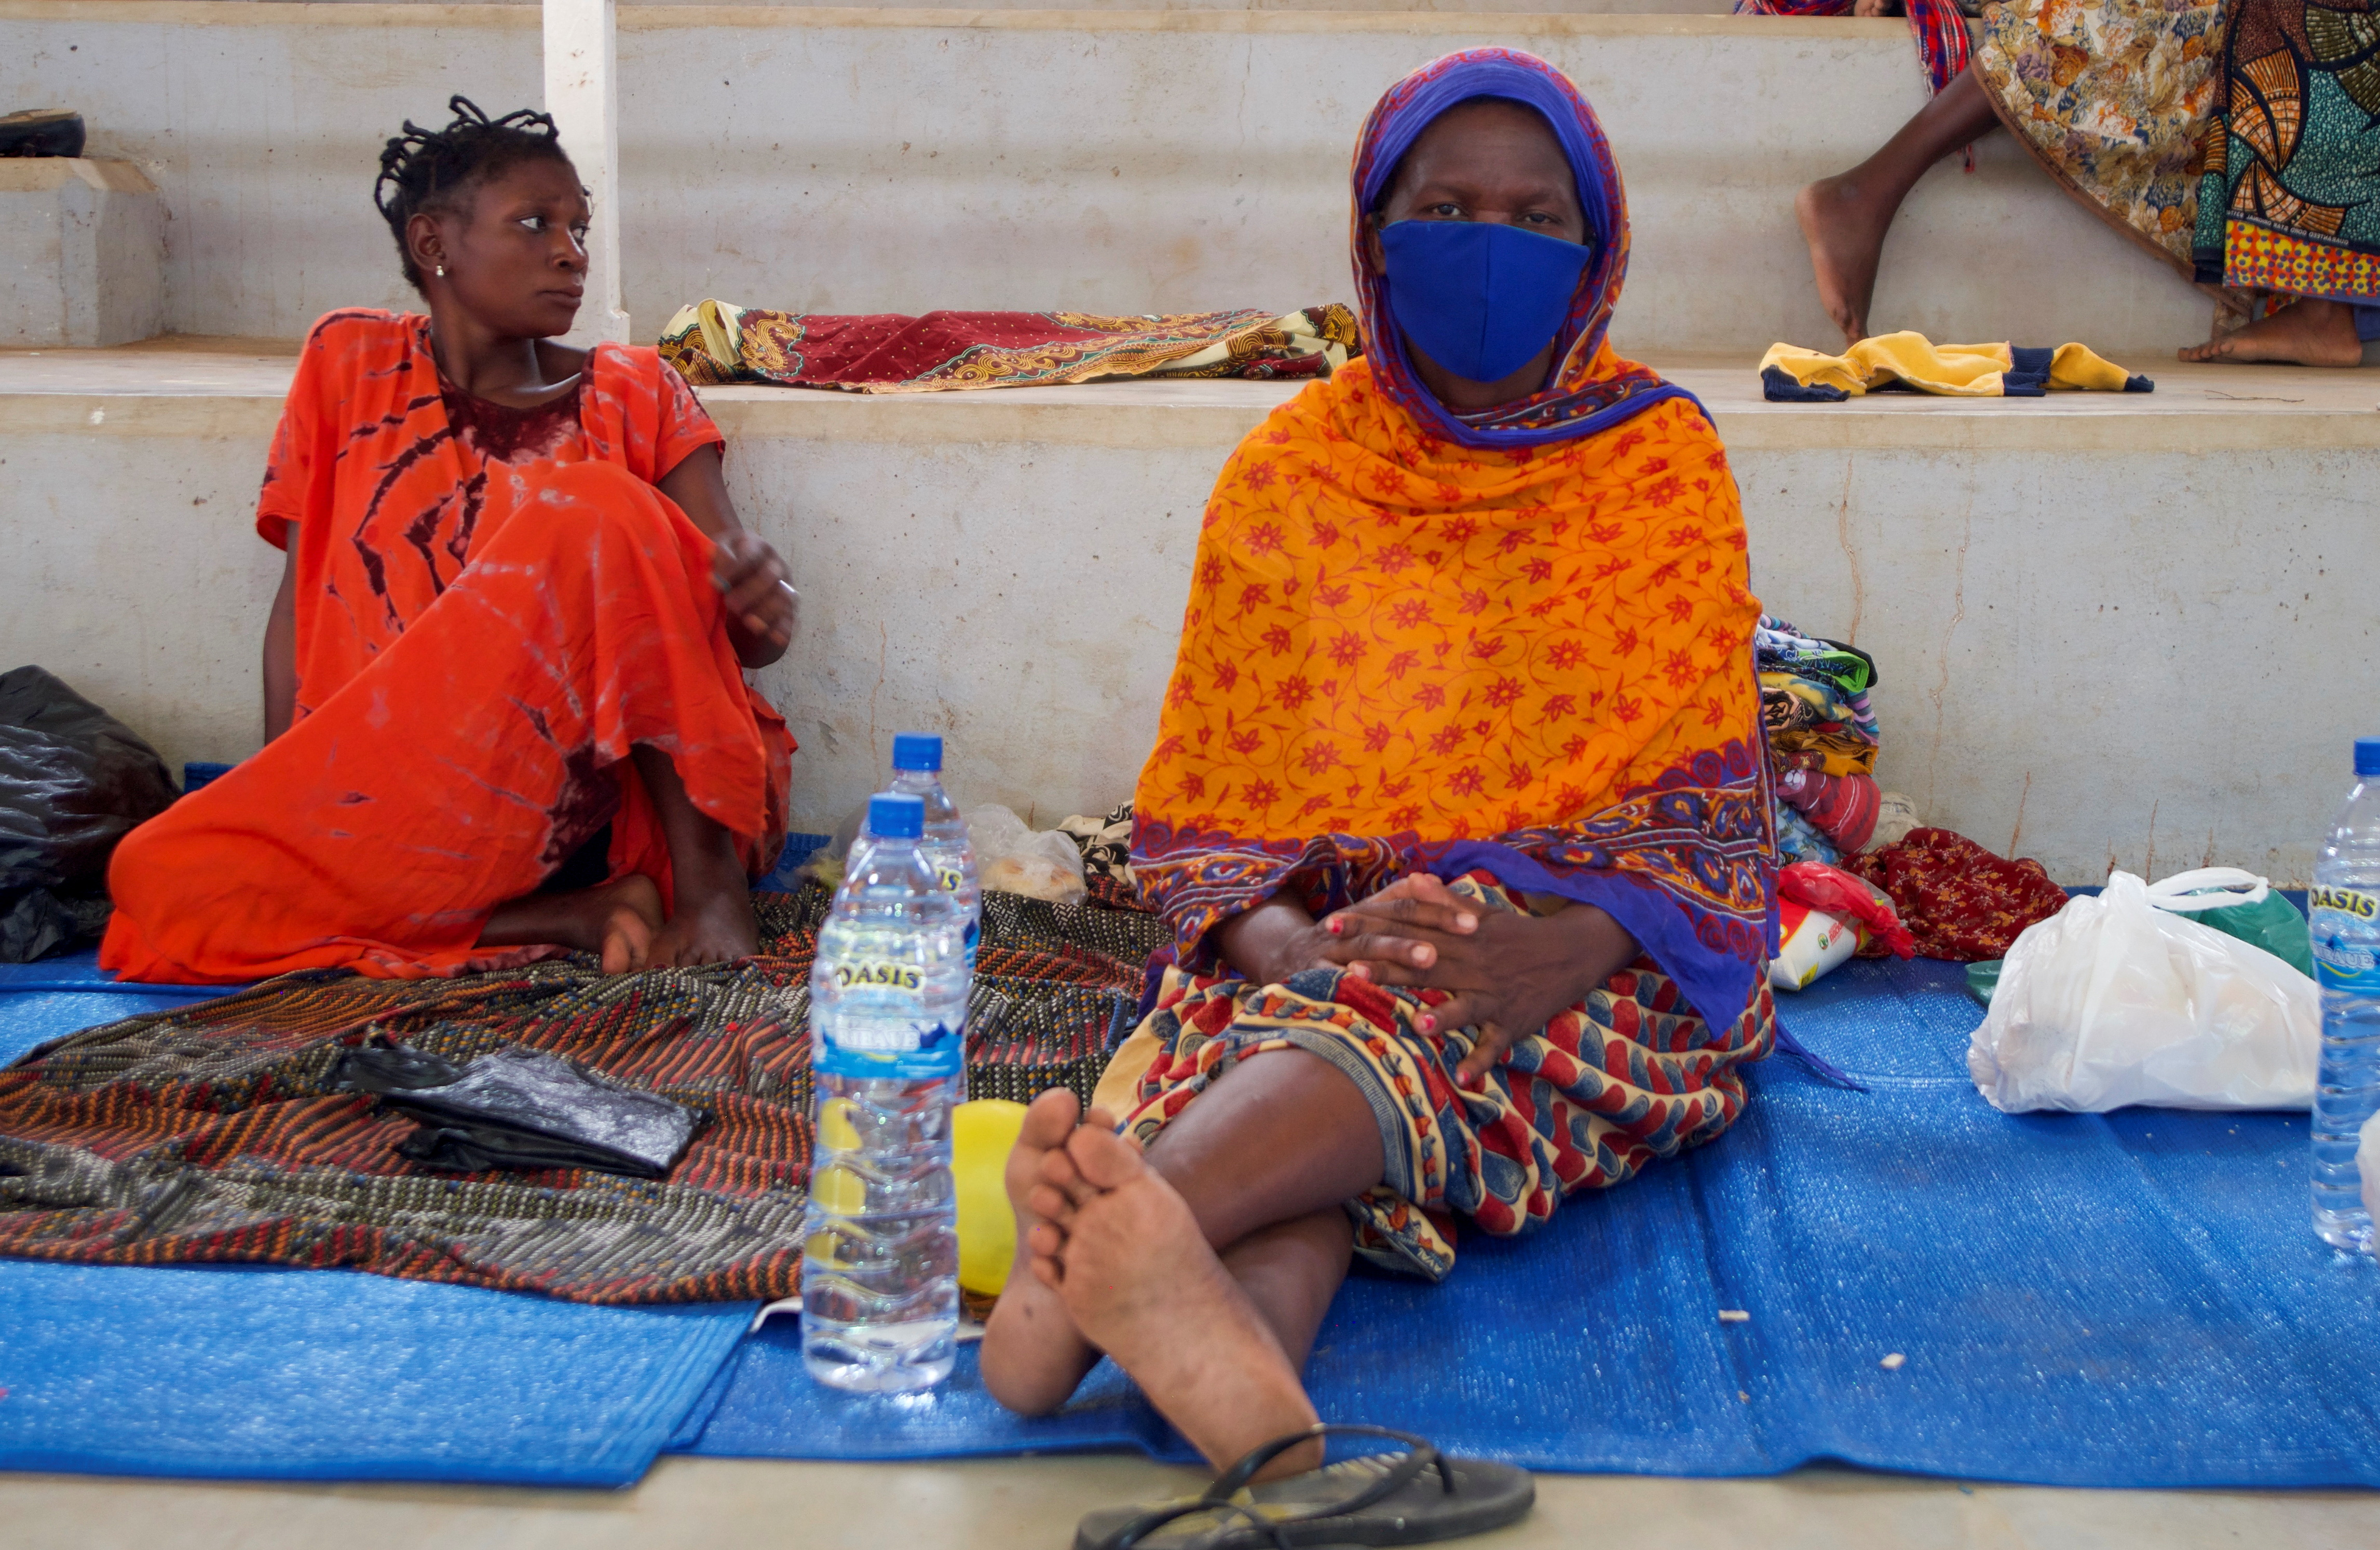 Displaced women sit on mats after fleeing an attack claimed by Islamic State-linked insurgents on the town of Palma, at a displacement centre in Pemba, Mozambique, April 2, 2021. REUTERS/Emidio Jozine